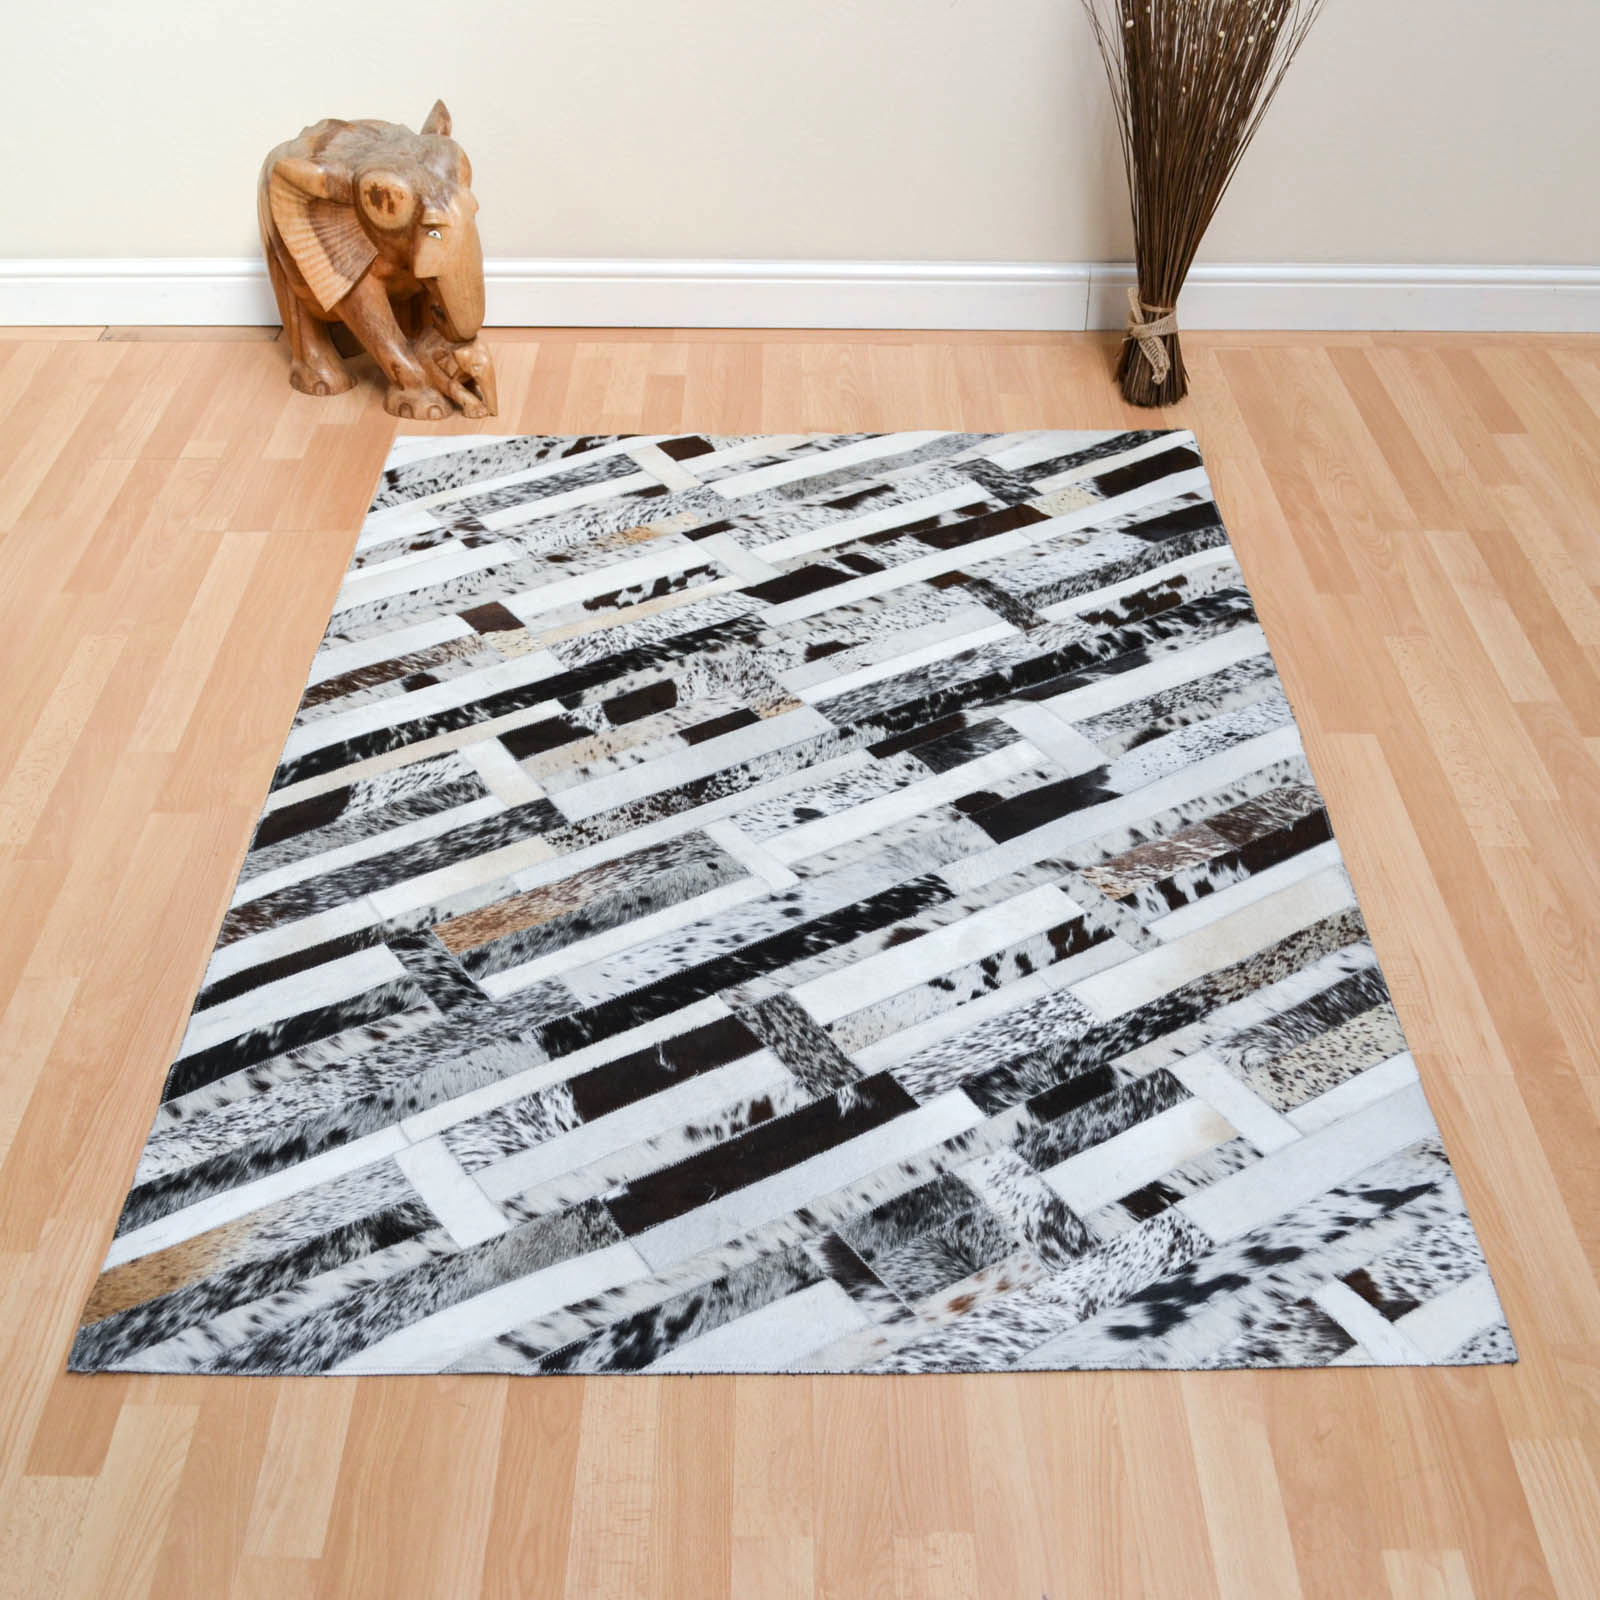 Leather Patchwork Rug in Herring Bone Mix